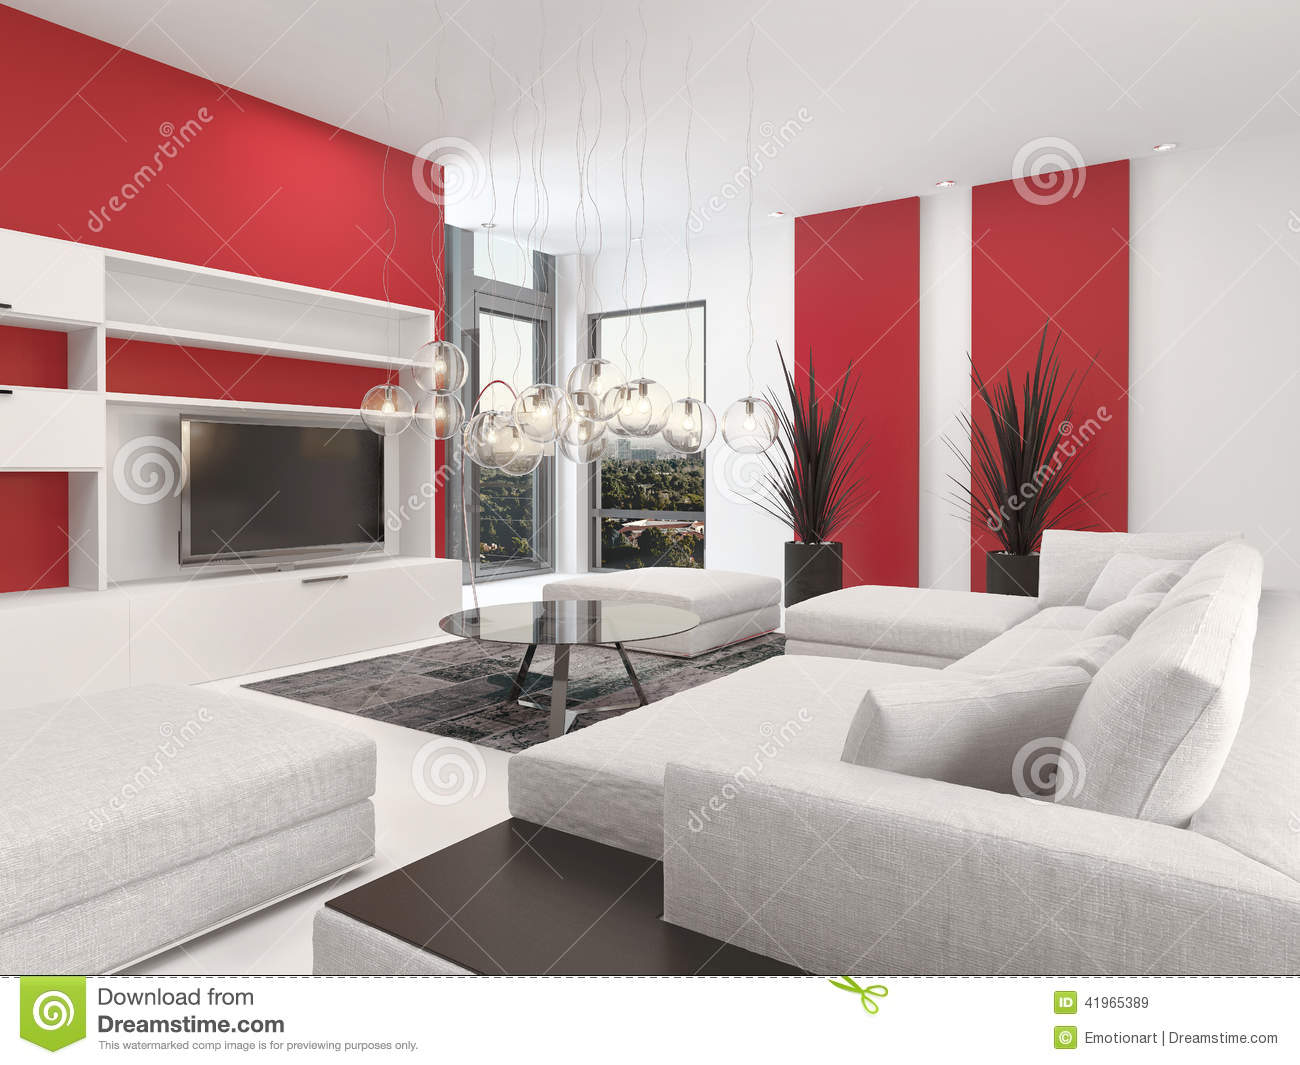 Contemporary living room interior with red accents stock Red accents for living room